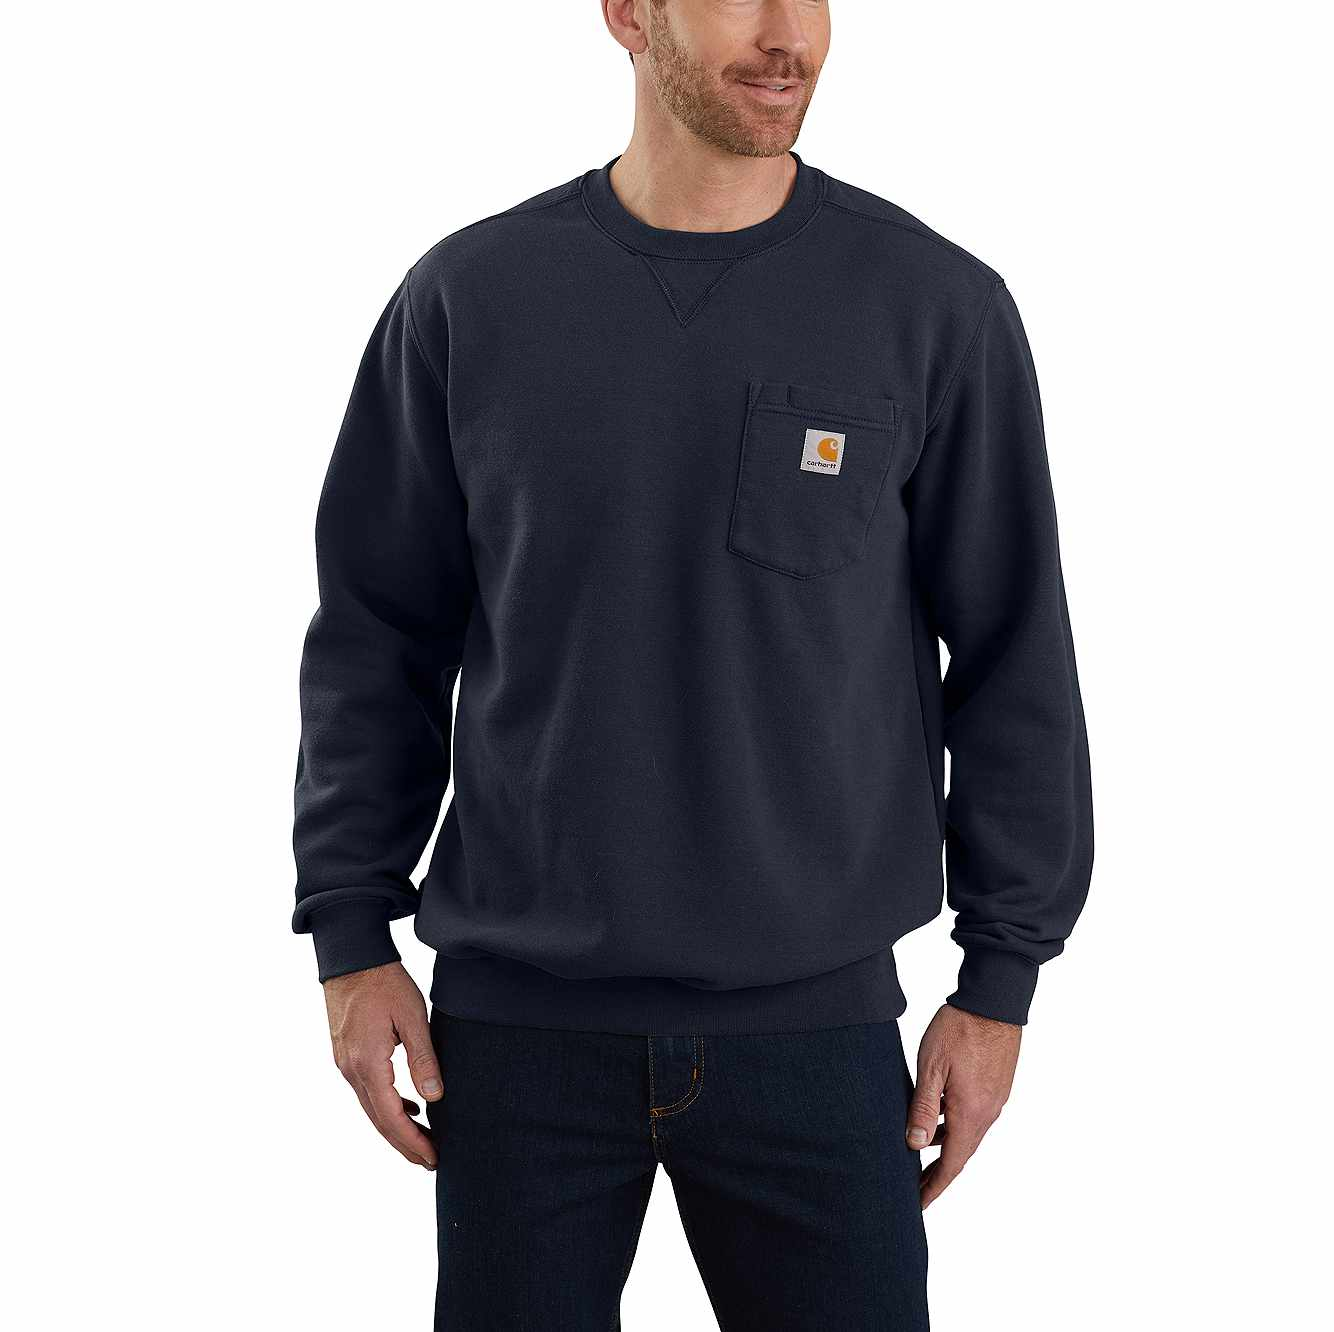 Picture of LOOSE FIT MIDWEIGHT CREWNECK POCKET SWEATSHIRT